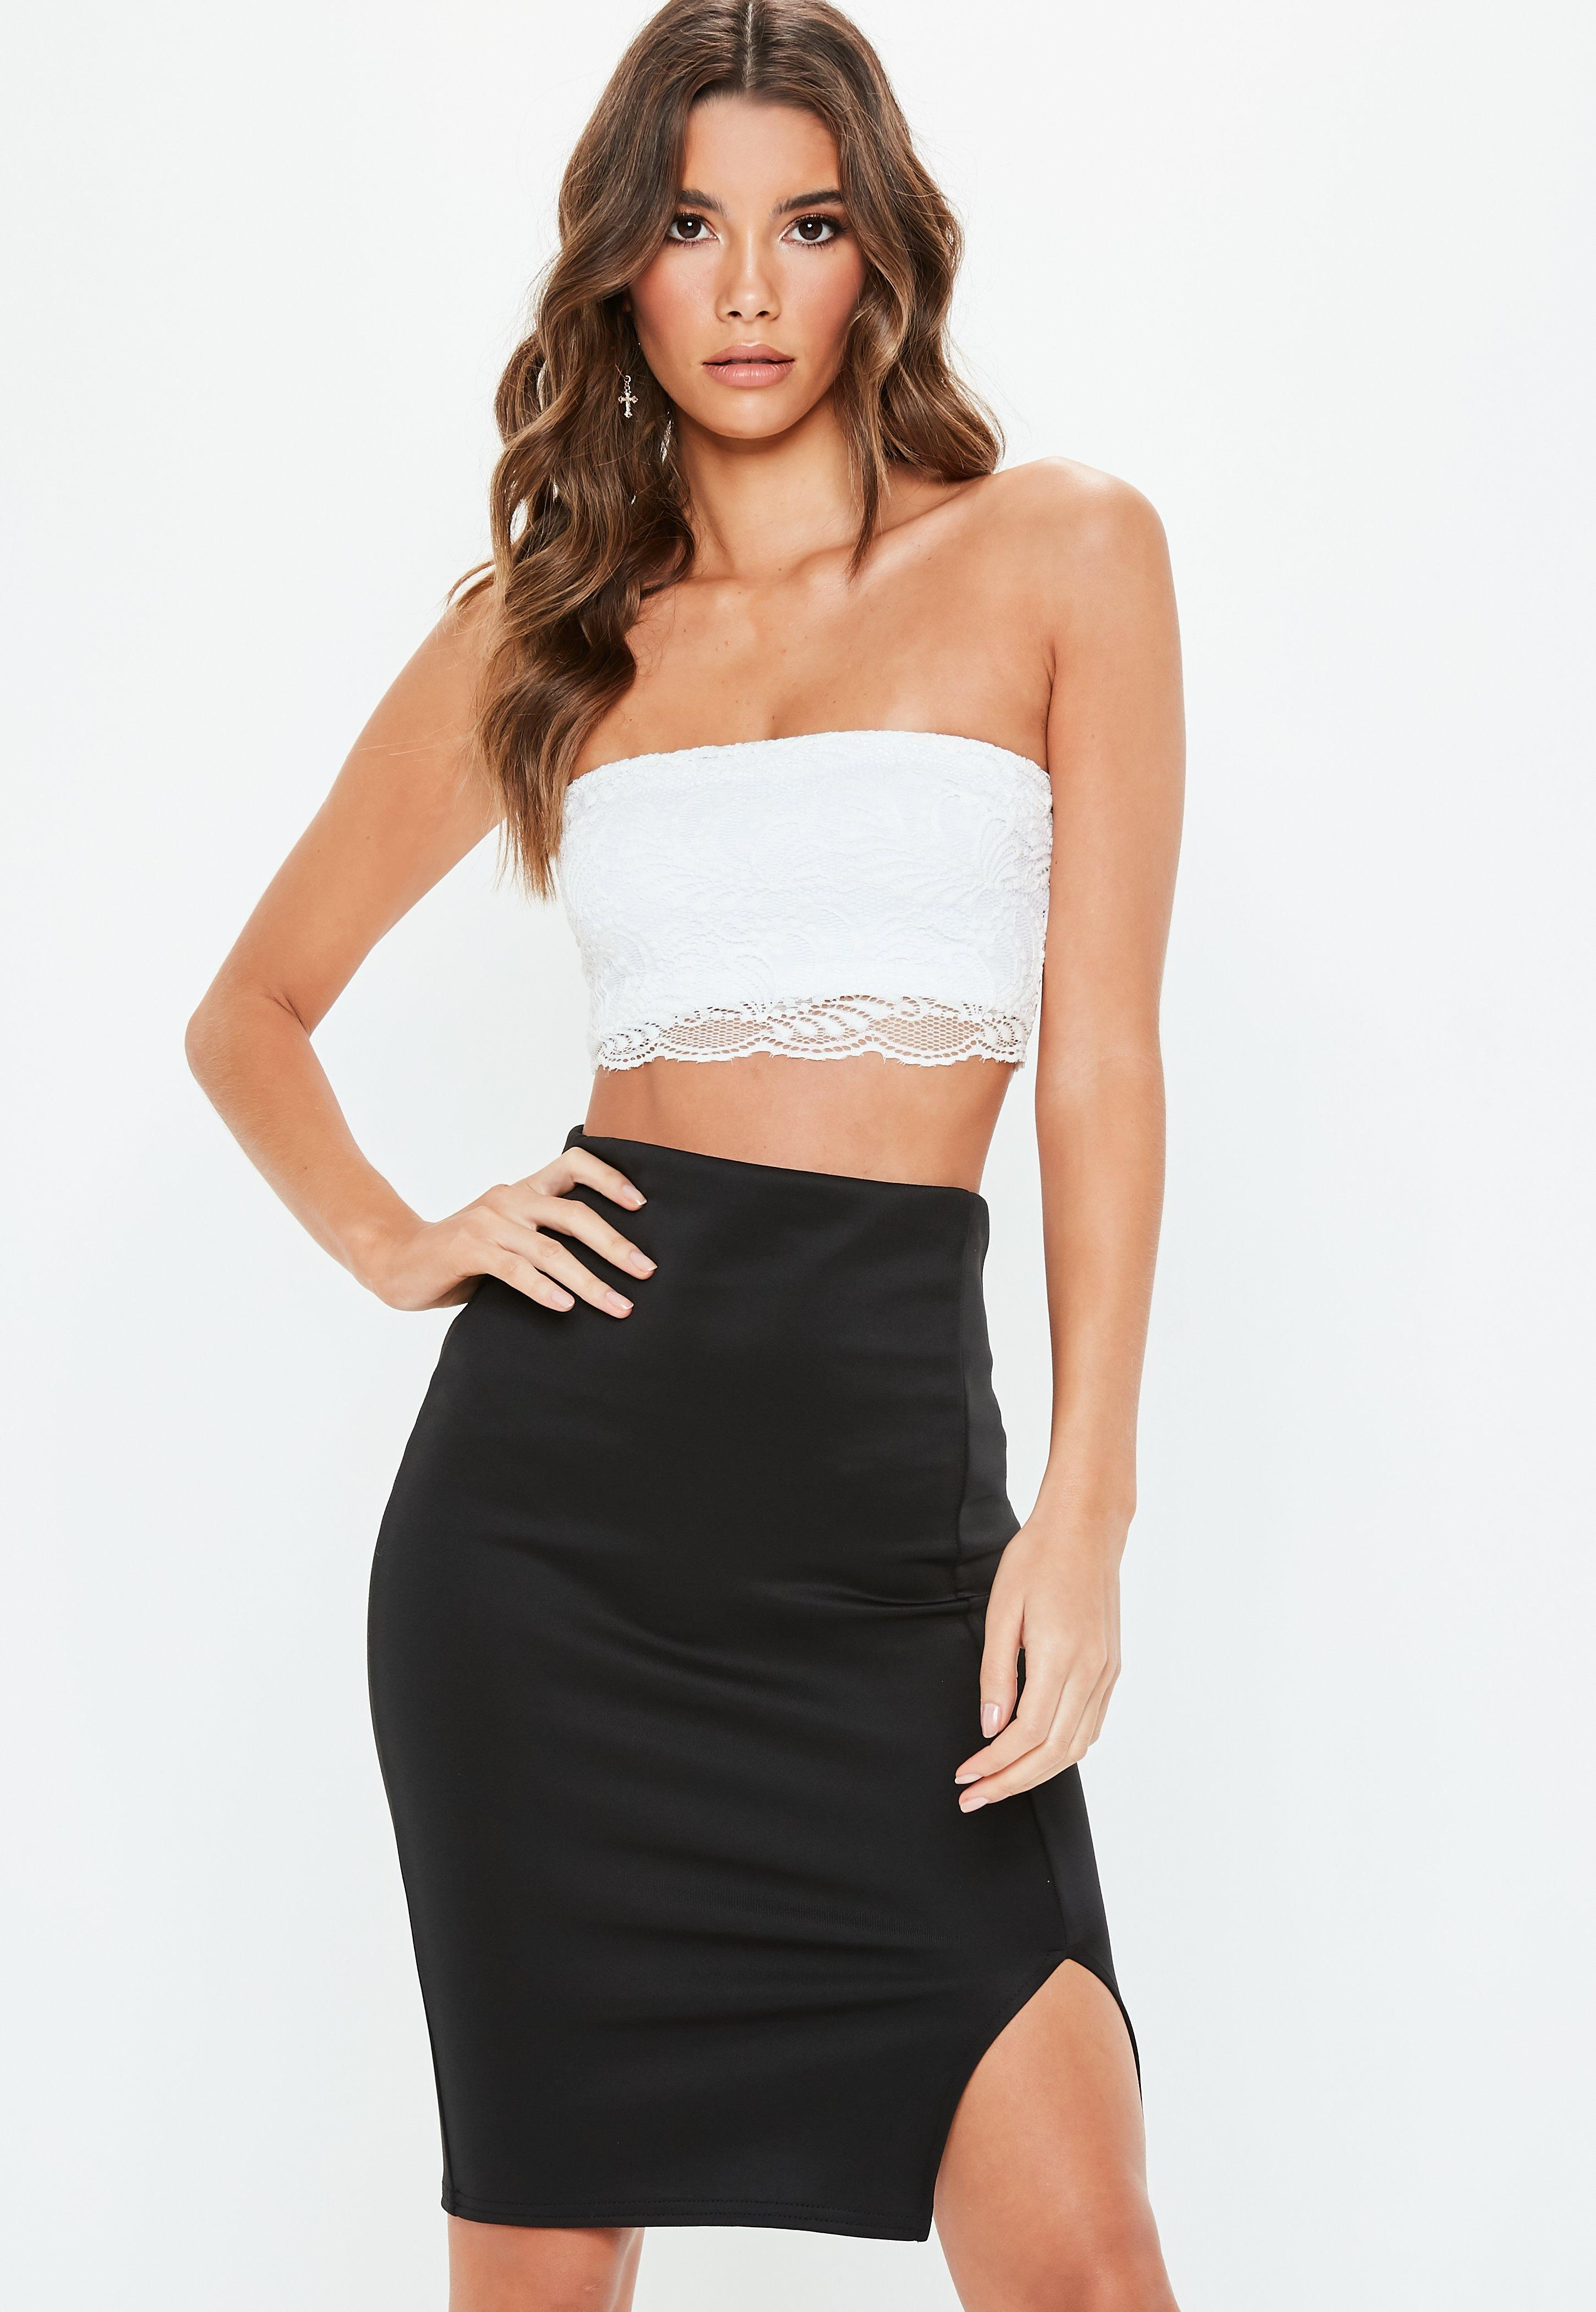 c67de8b03c7919 Lyst - Missguided White Lace Bandeau Bralet in White